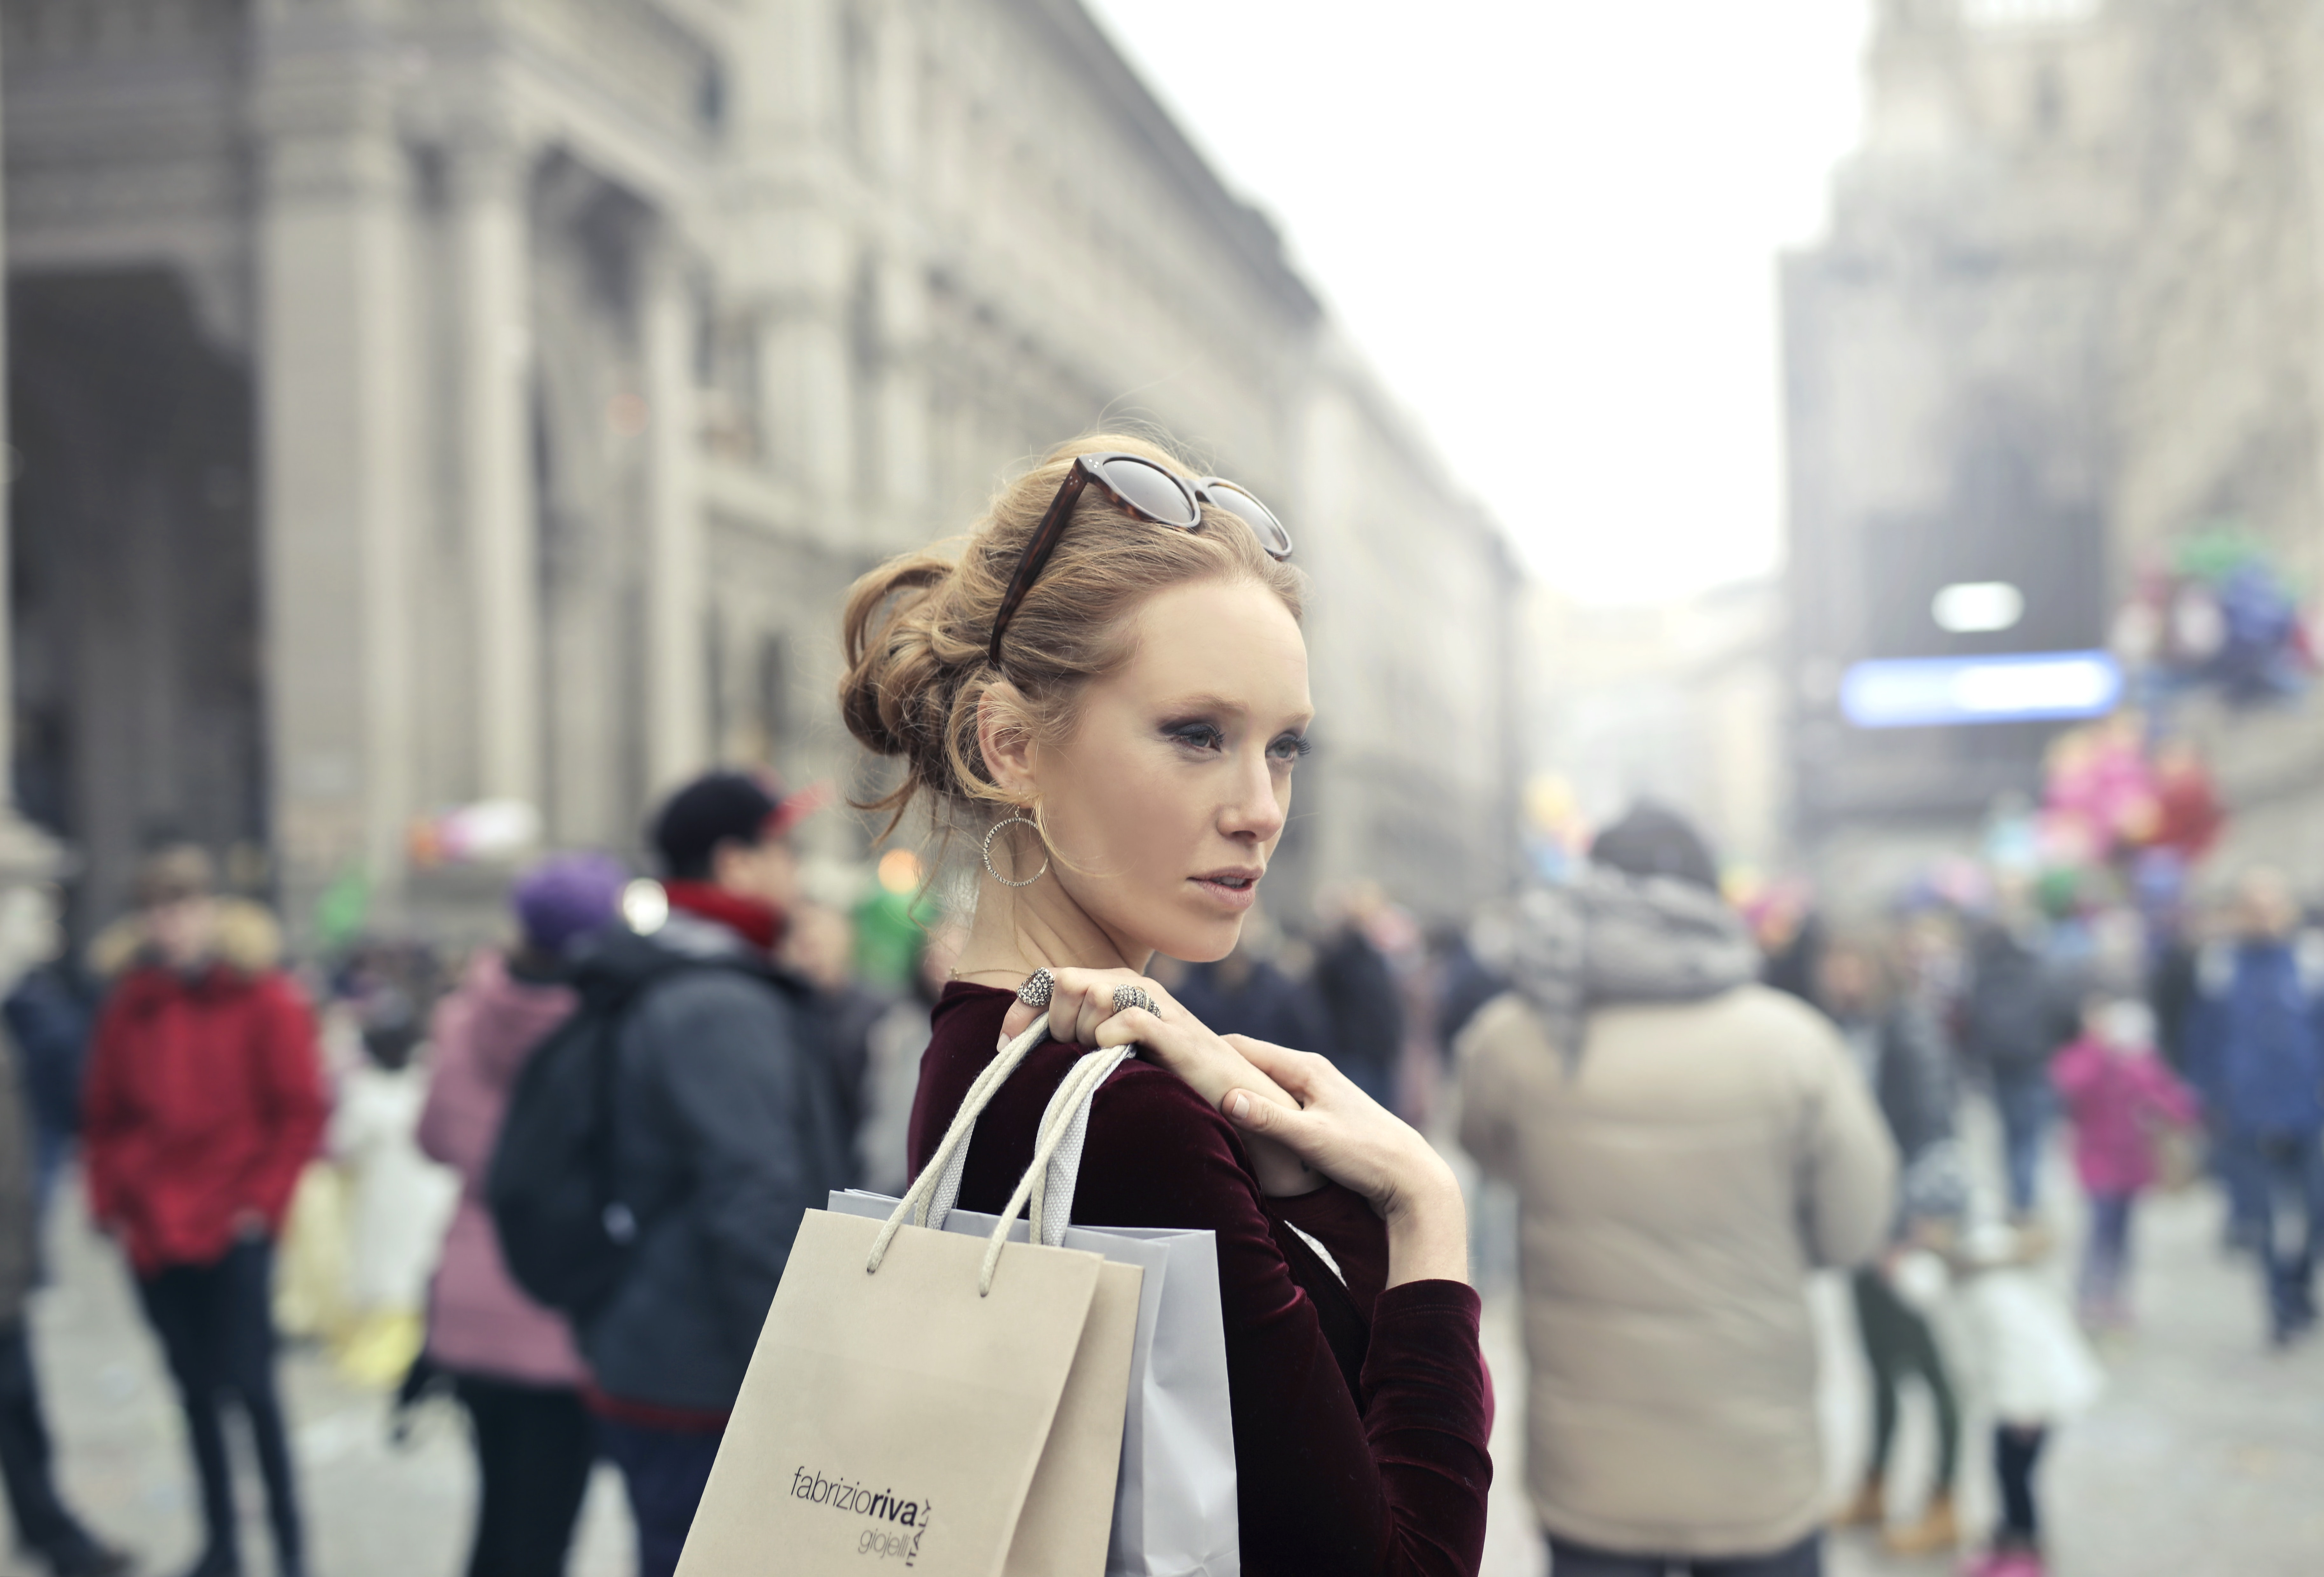 Woman wearing maroon long-sleeved top carrying brown and white paper bags in selective focus photography